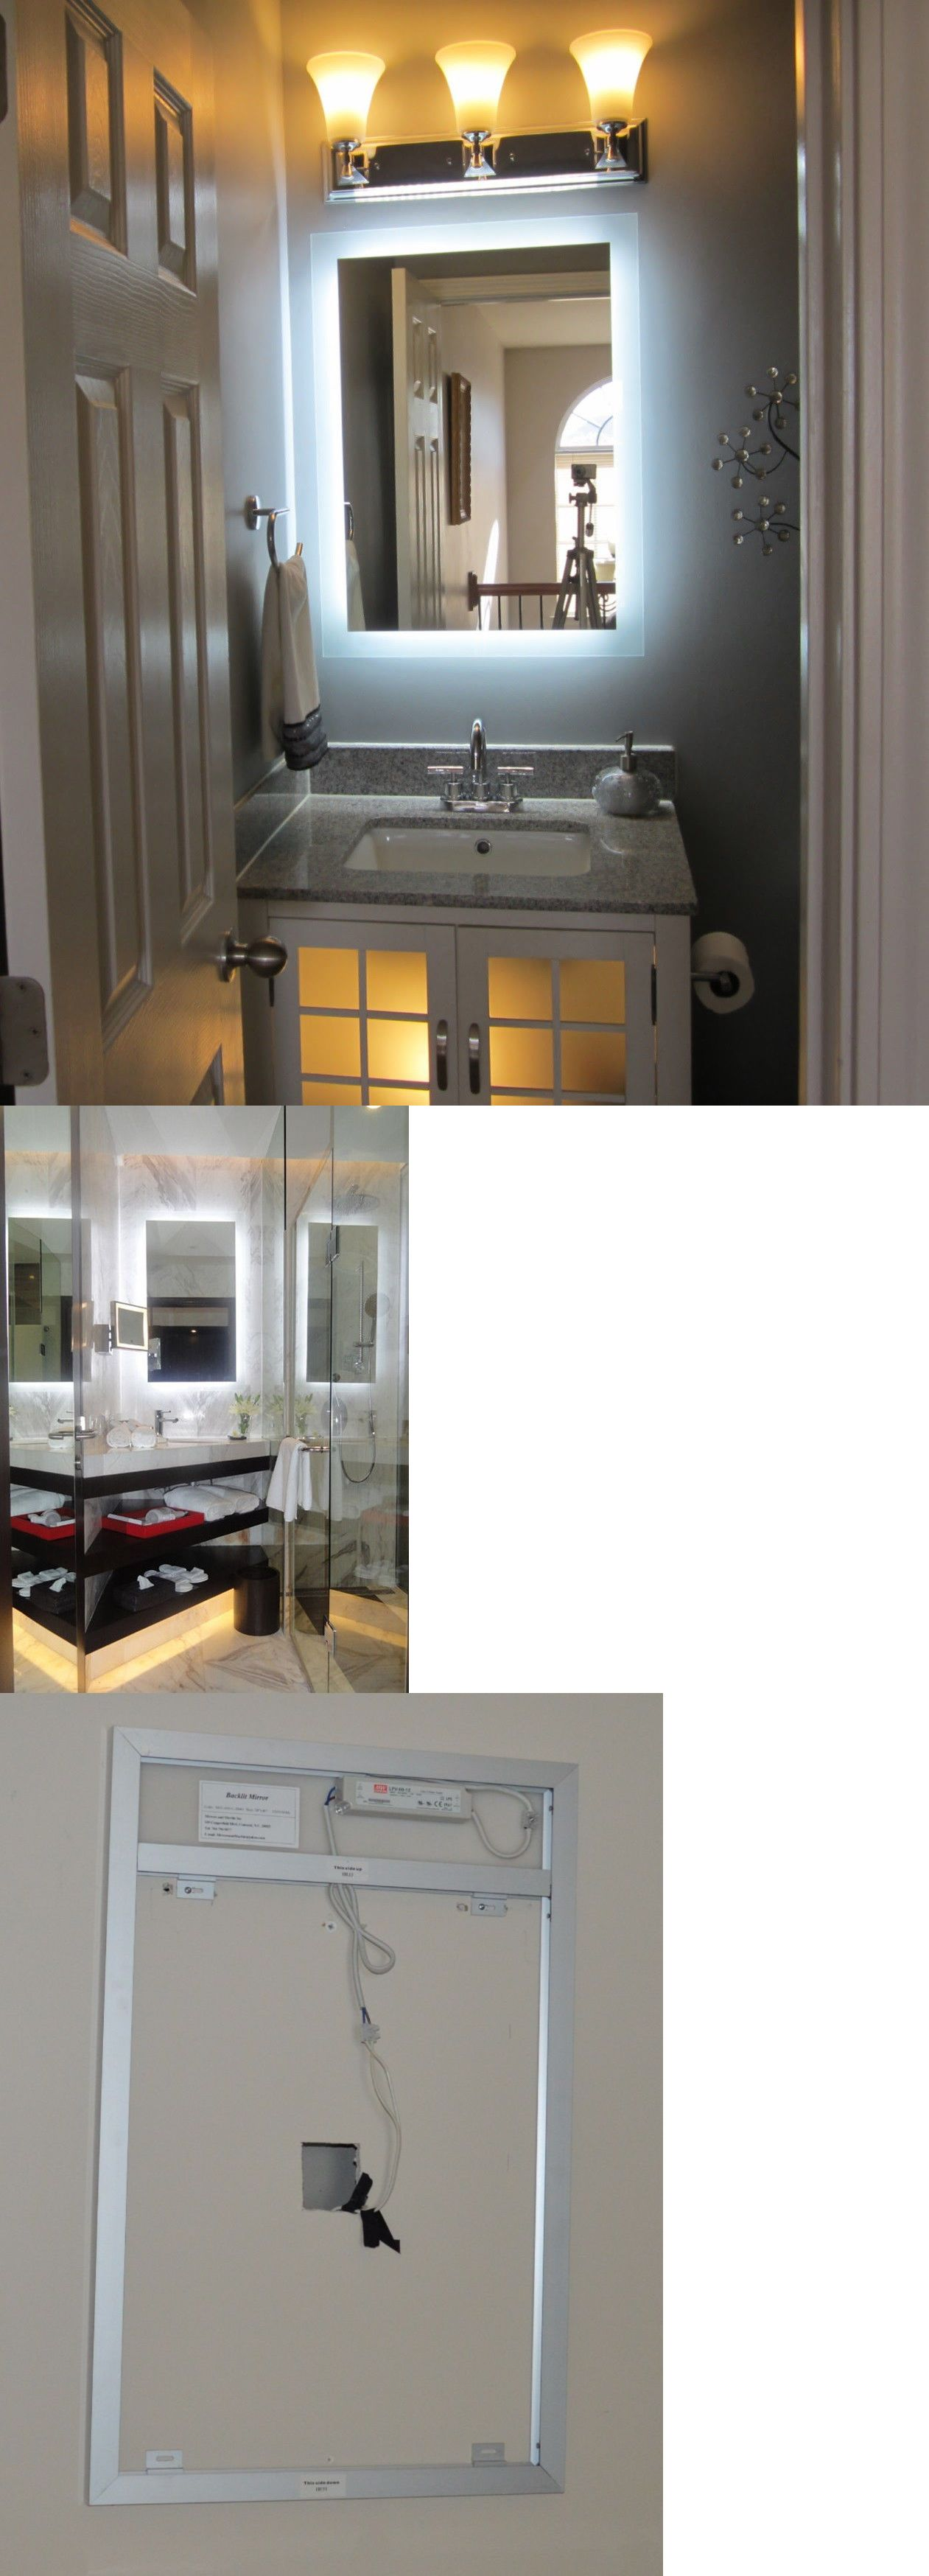 Lighted vanity mirror make up wall mounted led bath mirror mam94331 - Mirrors 133693 Lighted Vanity Mirror 24 Wide X 32 T Mam92432 Side Lighted Led Wall